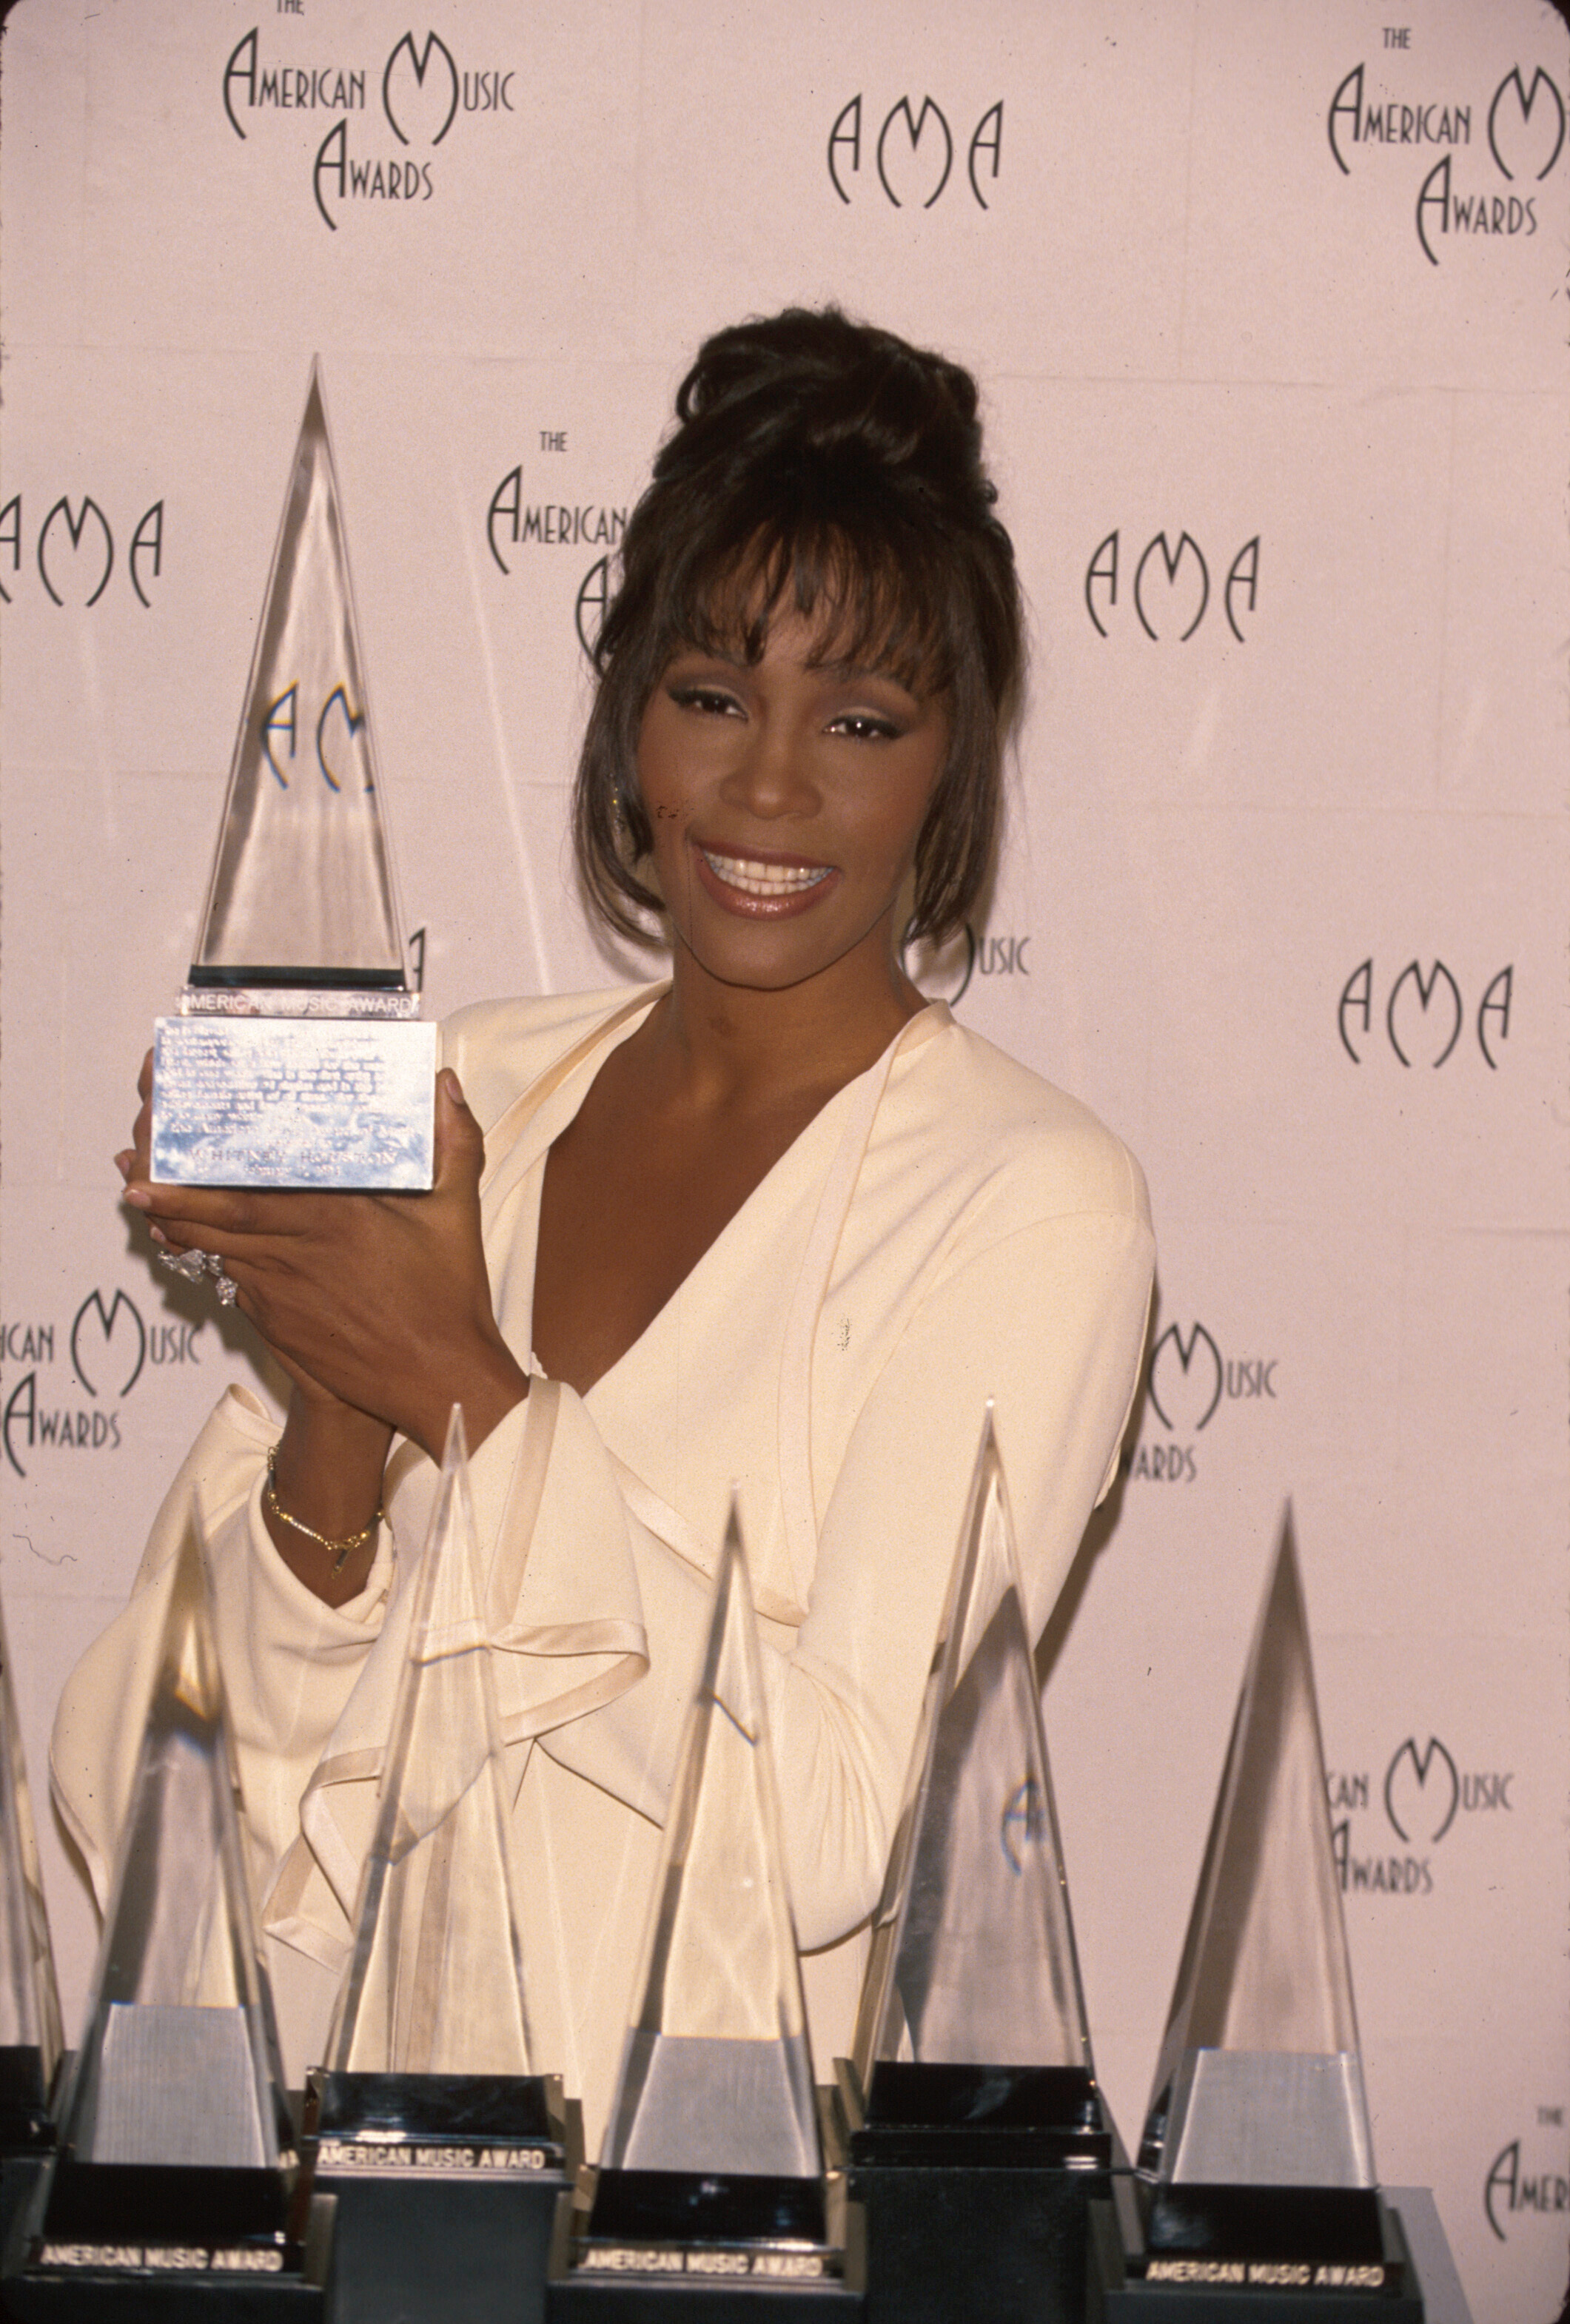 Whitney Houston holds her award in Press Room at American Music Awards held on Feb, 7, 1994.